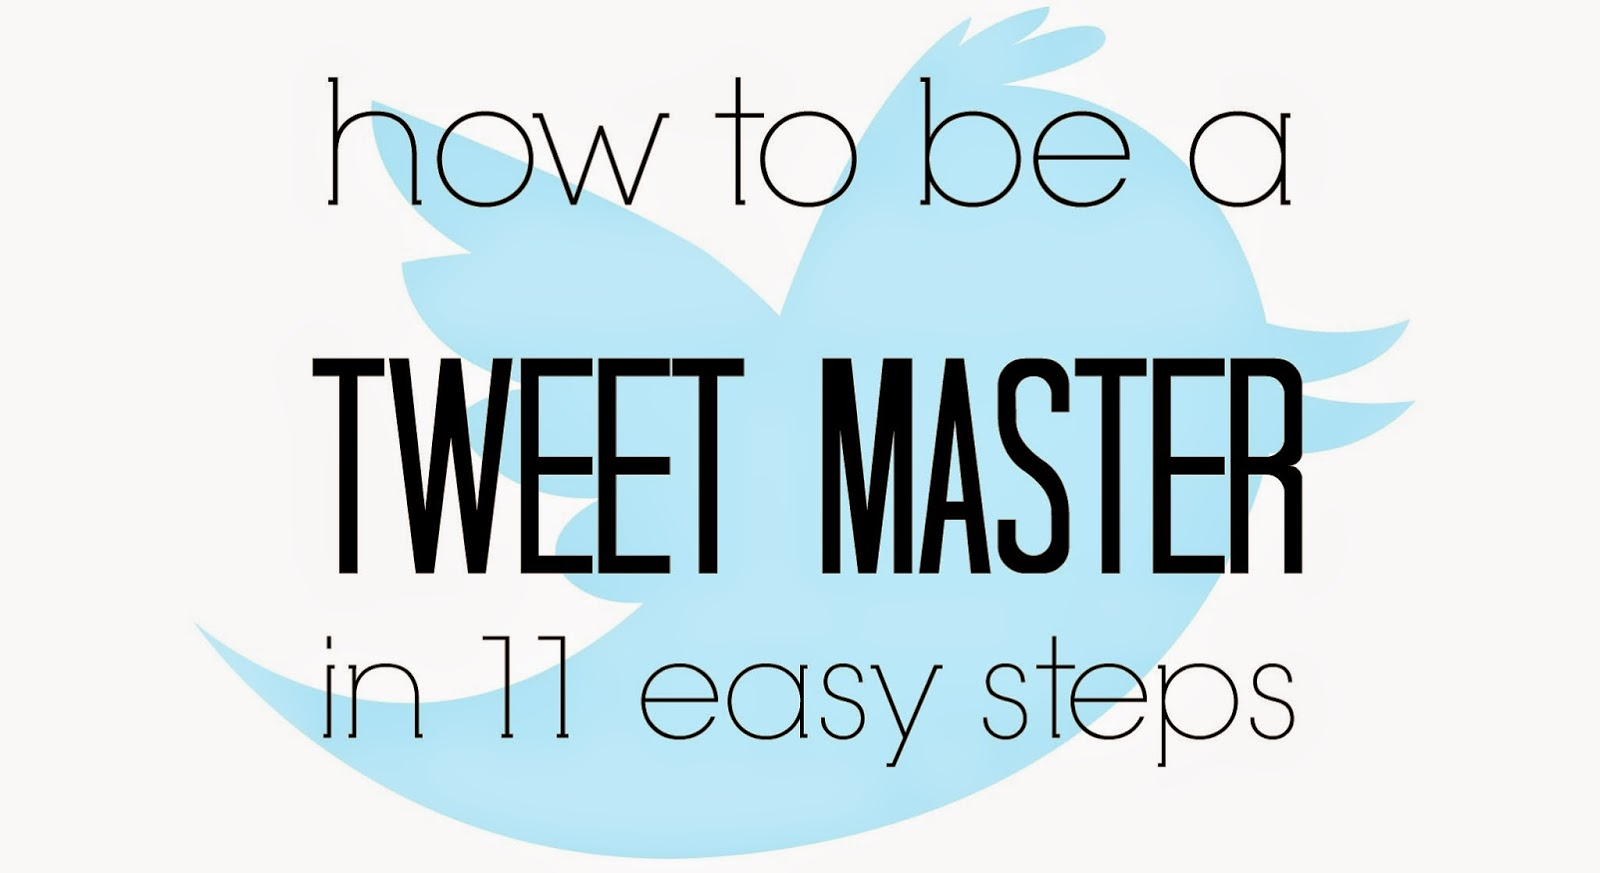 How to maximize twitter as a blogger